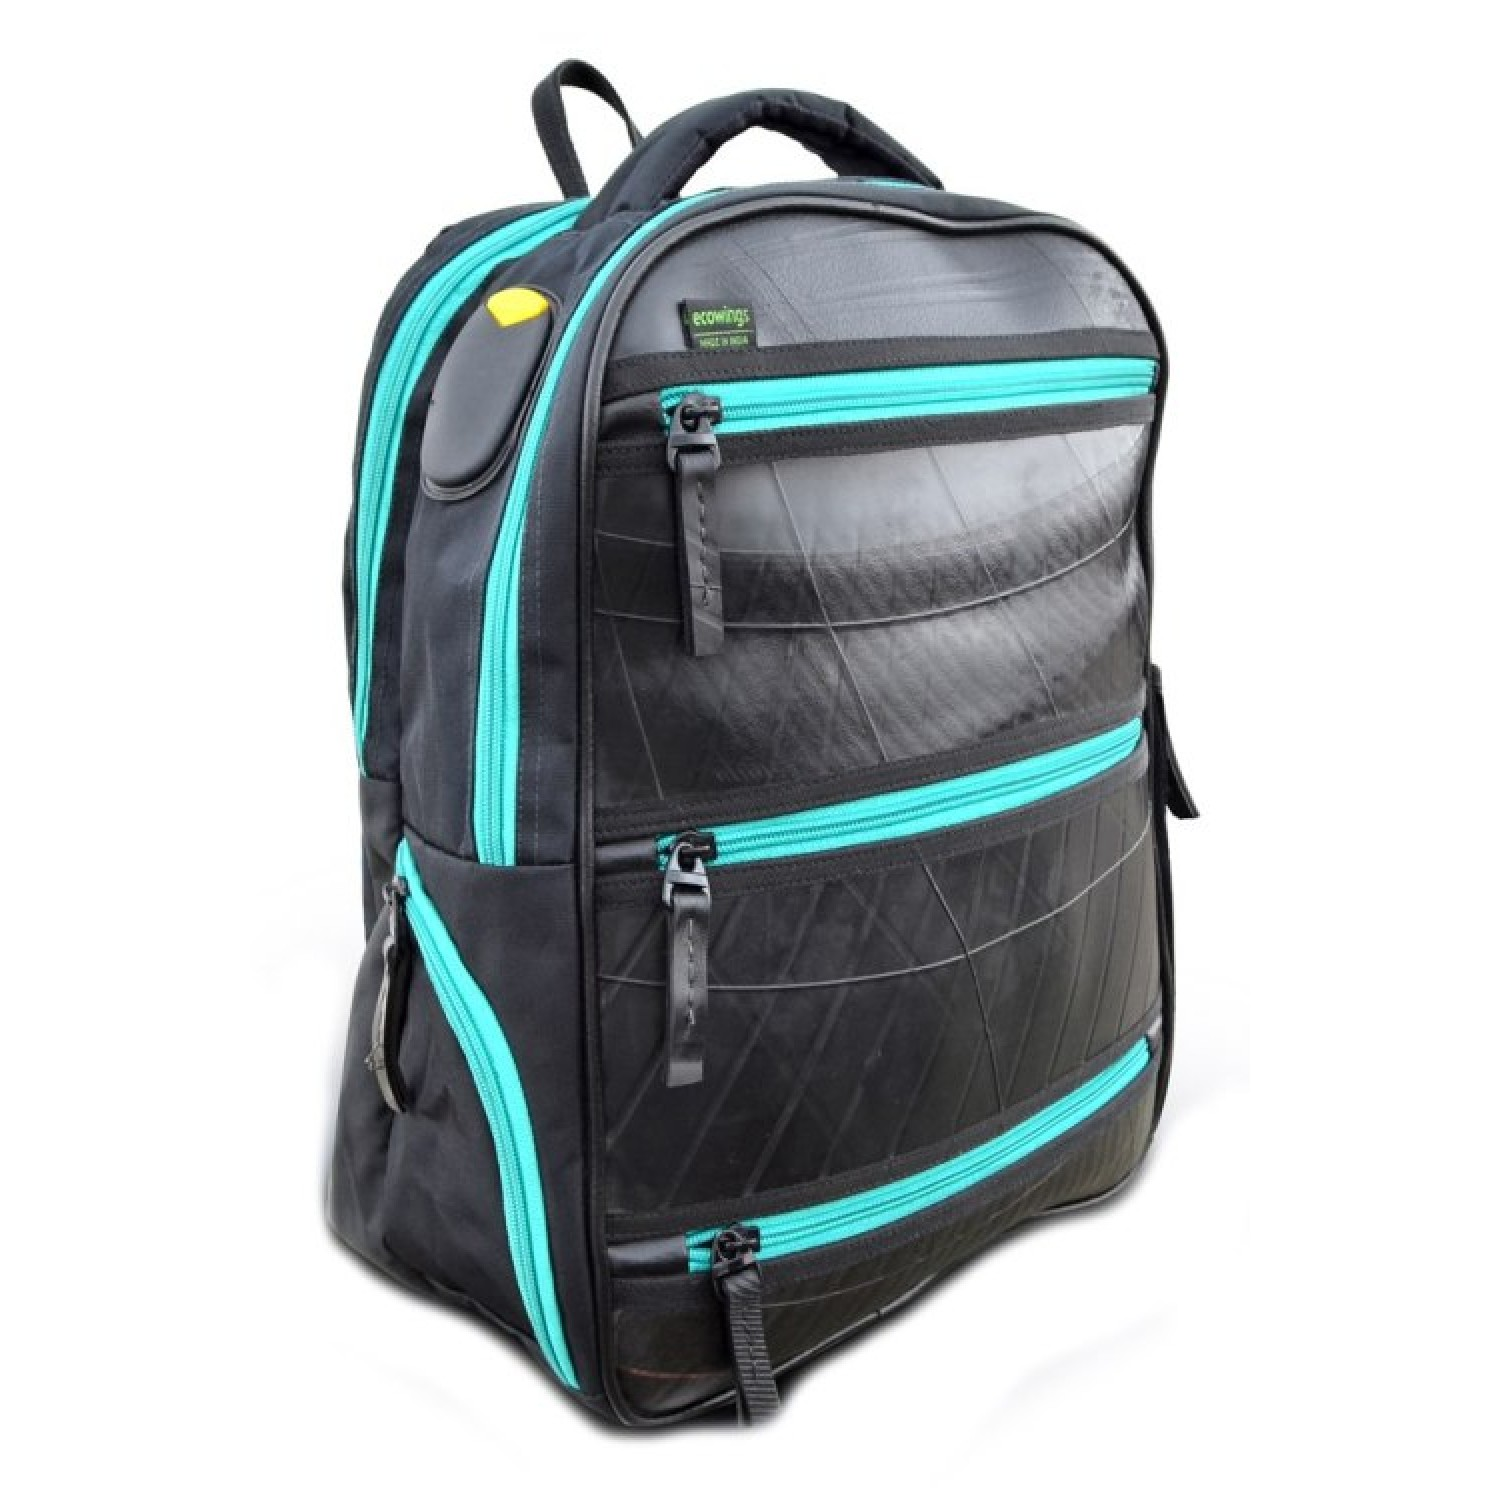 Ecowings BlackTiger backpack